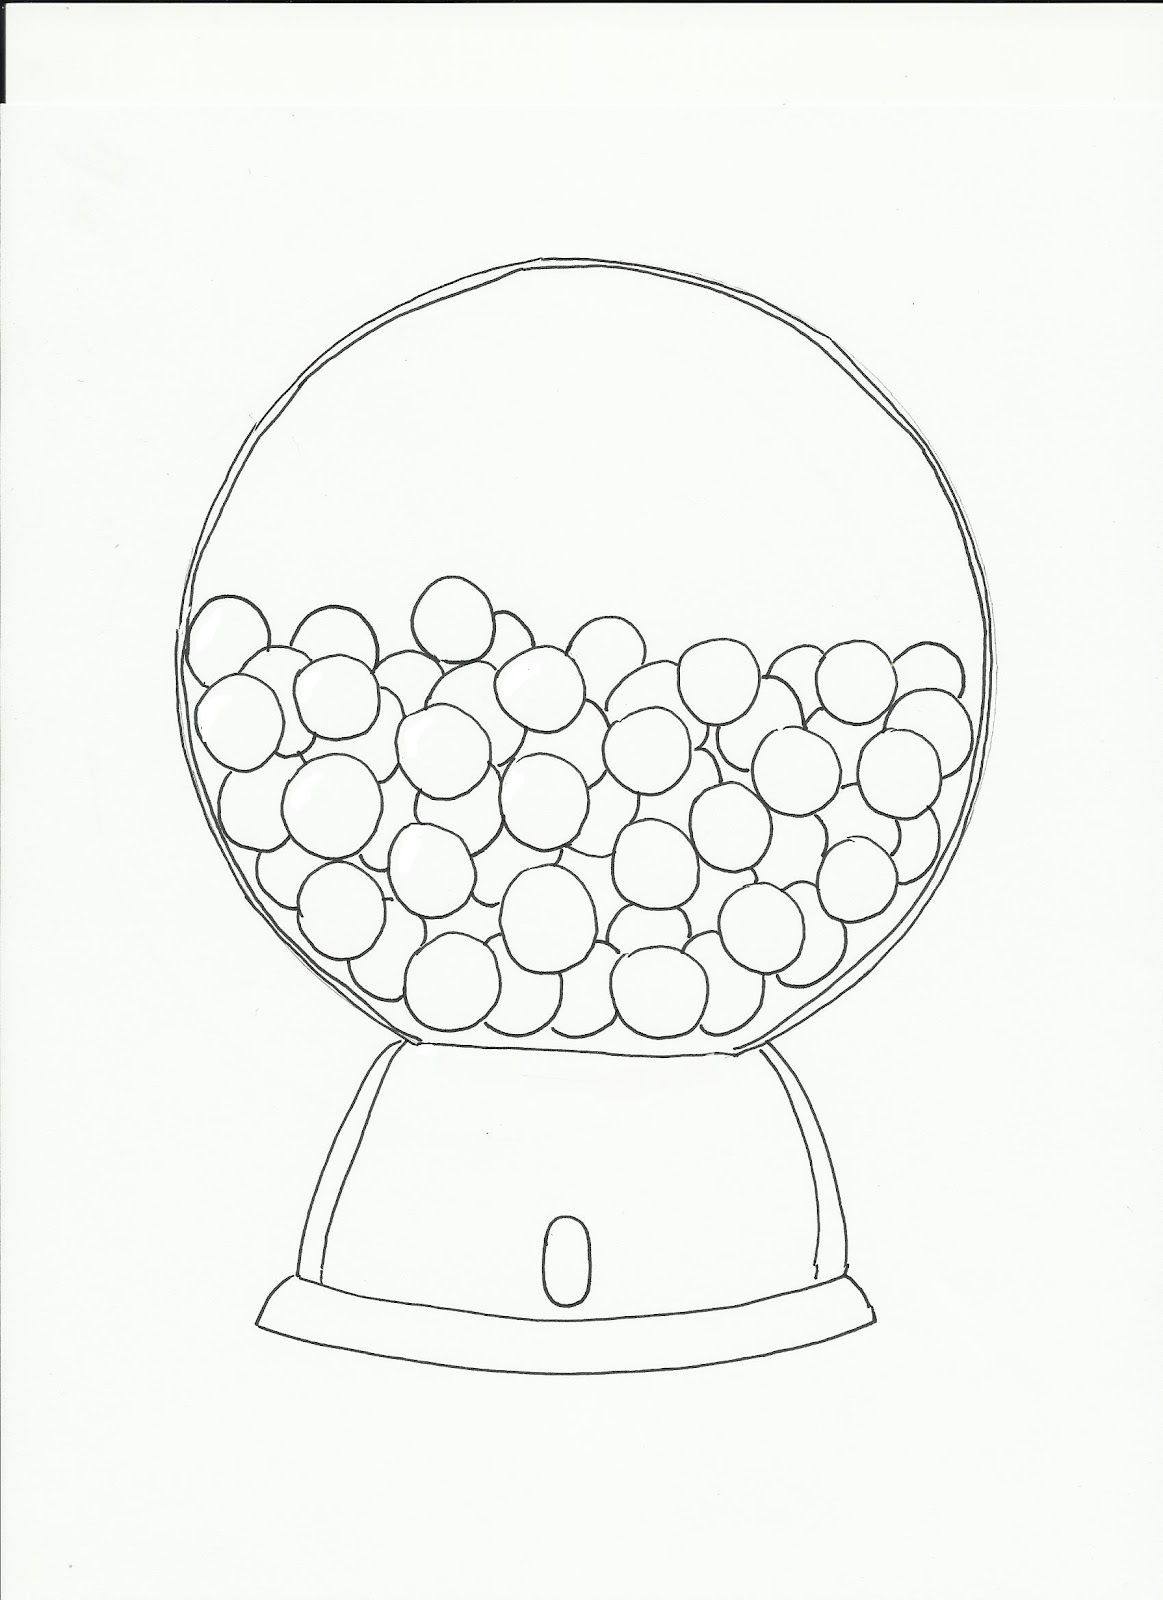 gumball machine coloring page - art class ideas gumball machines